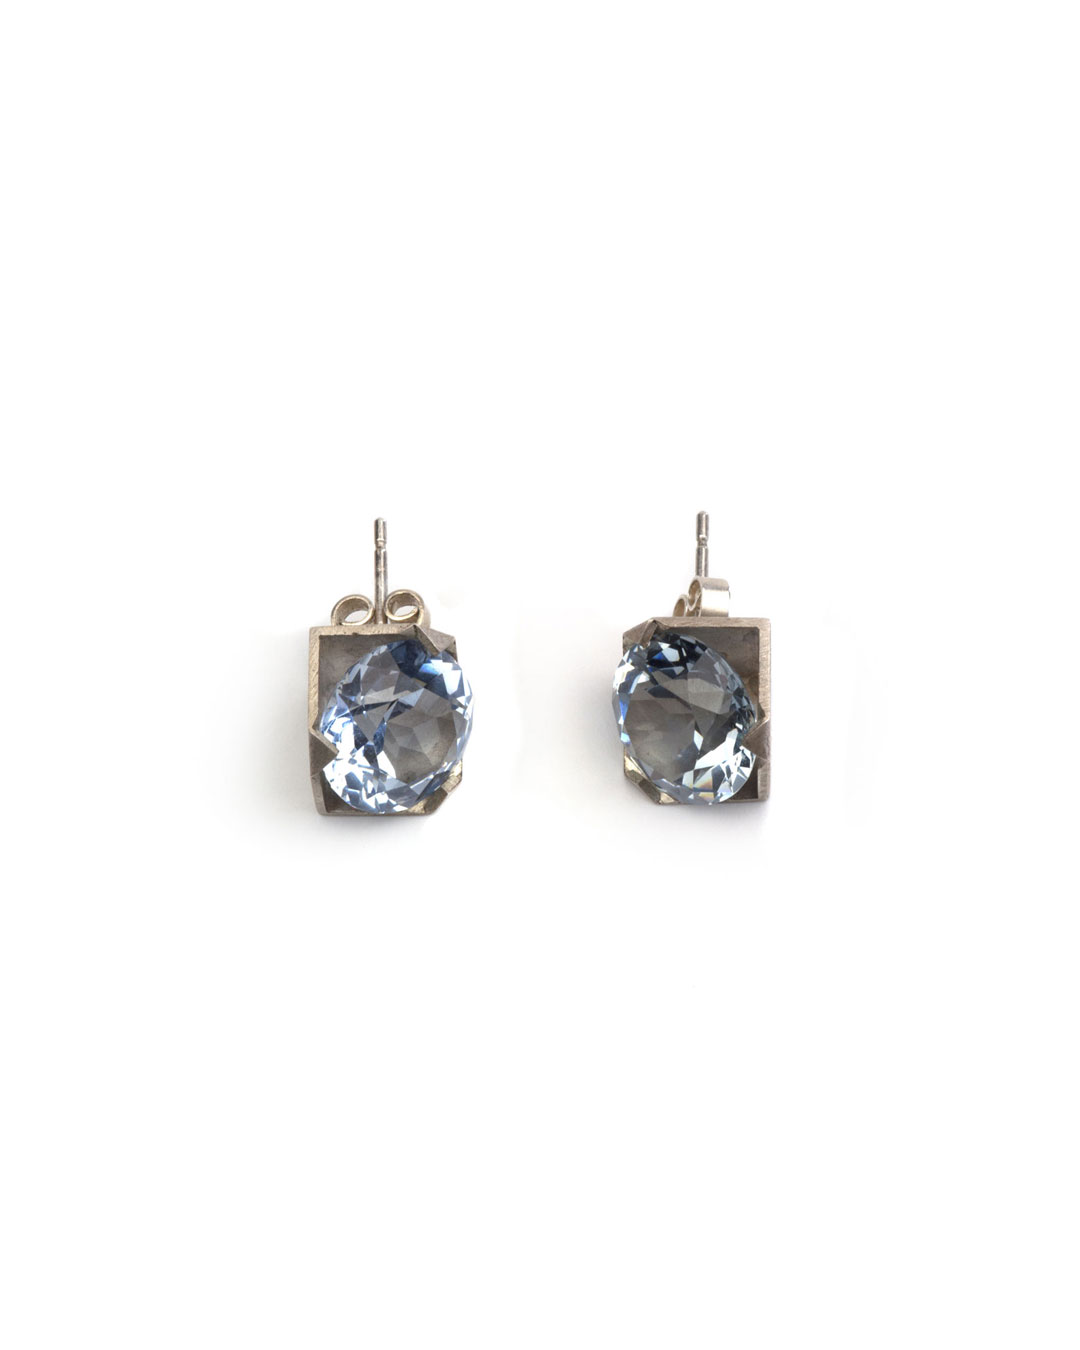 Herman Hermsen, untitled, 2020, earrings; silver, synthetic stone, 20 x 10 x 10 mm, €425